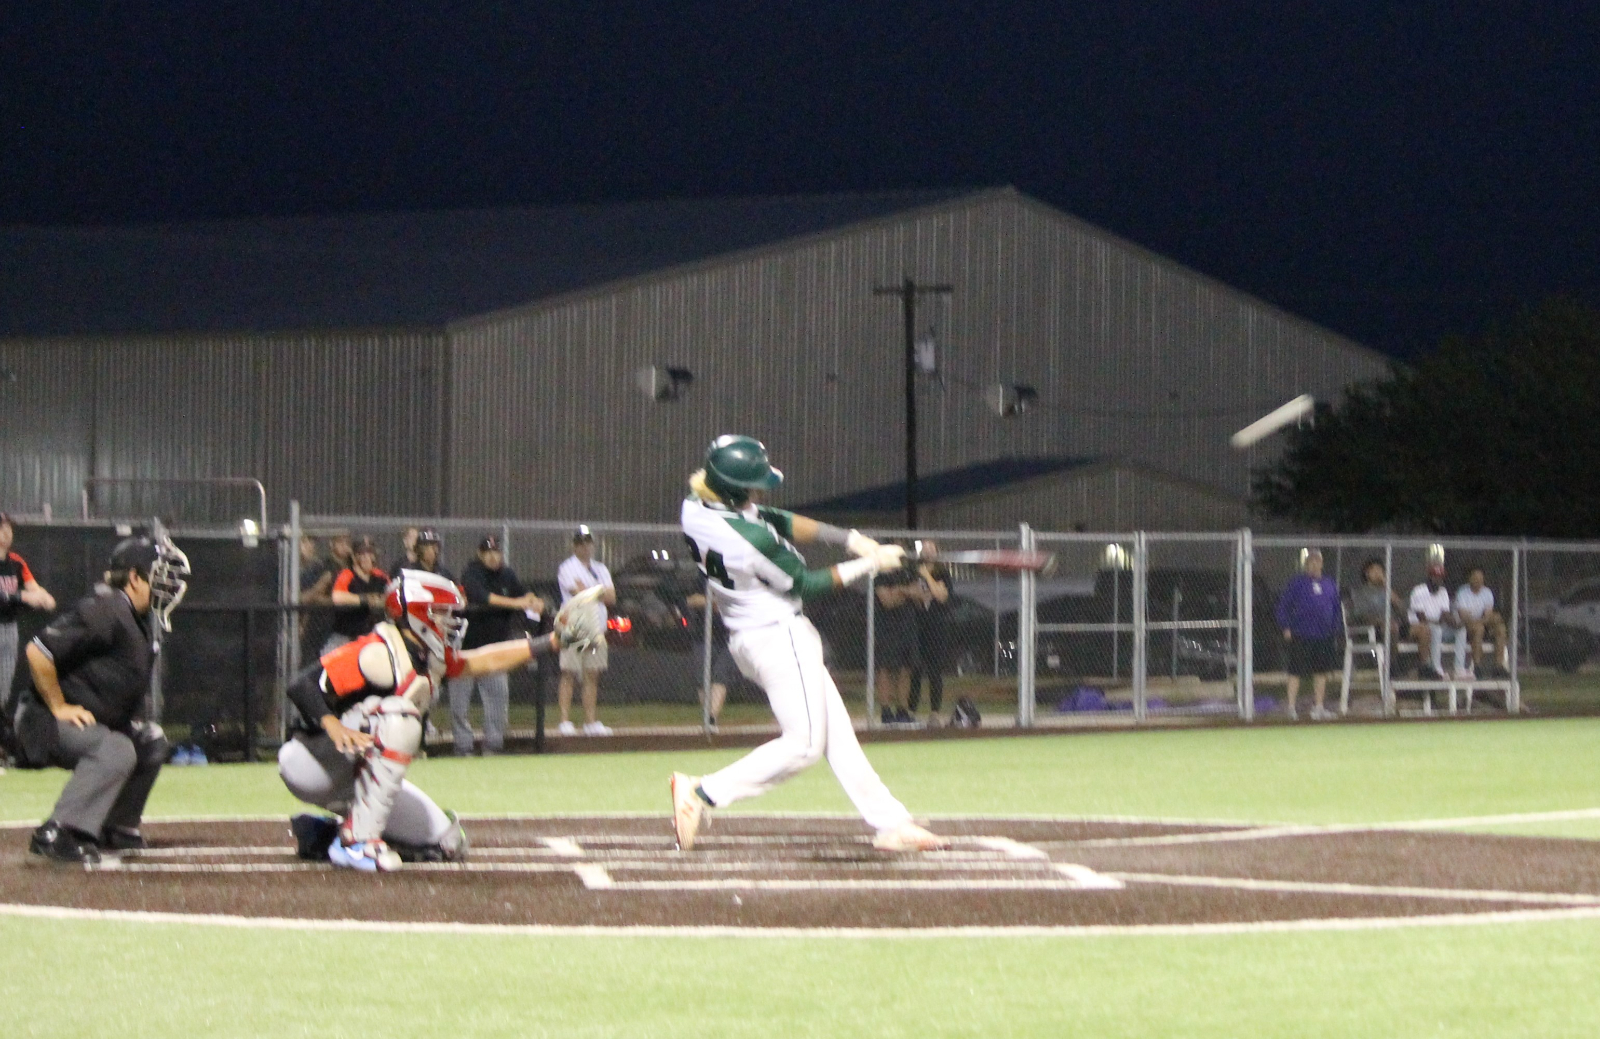 Trimble Tech wraps the 2021 baseball season with epic battle against Burleson, great job Bulldogs on a great season! Pictures of both games included.